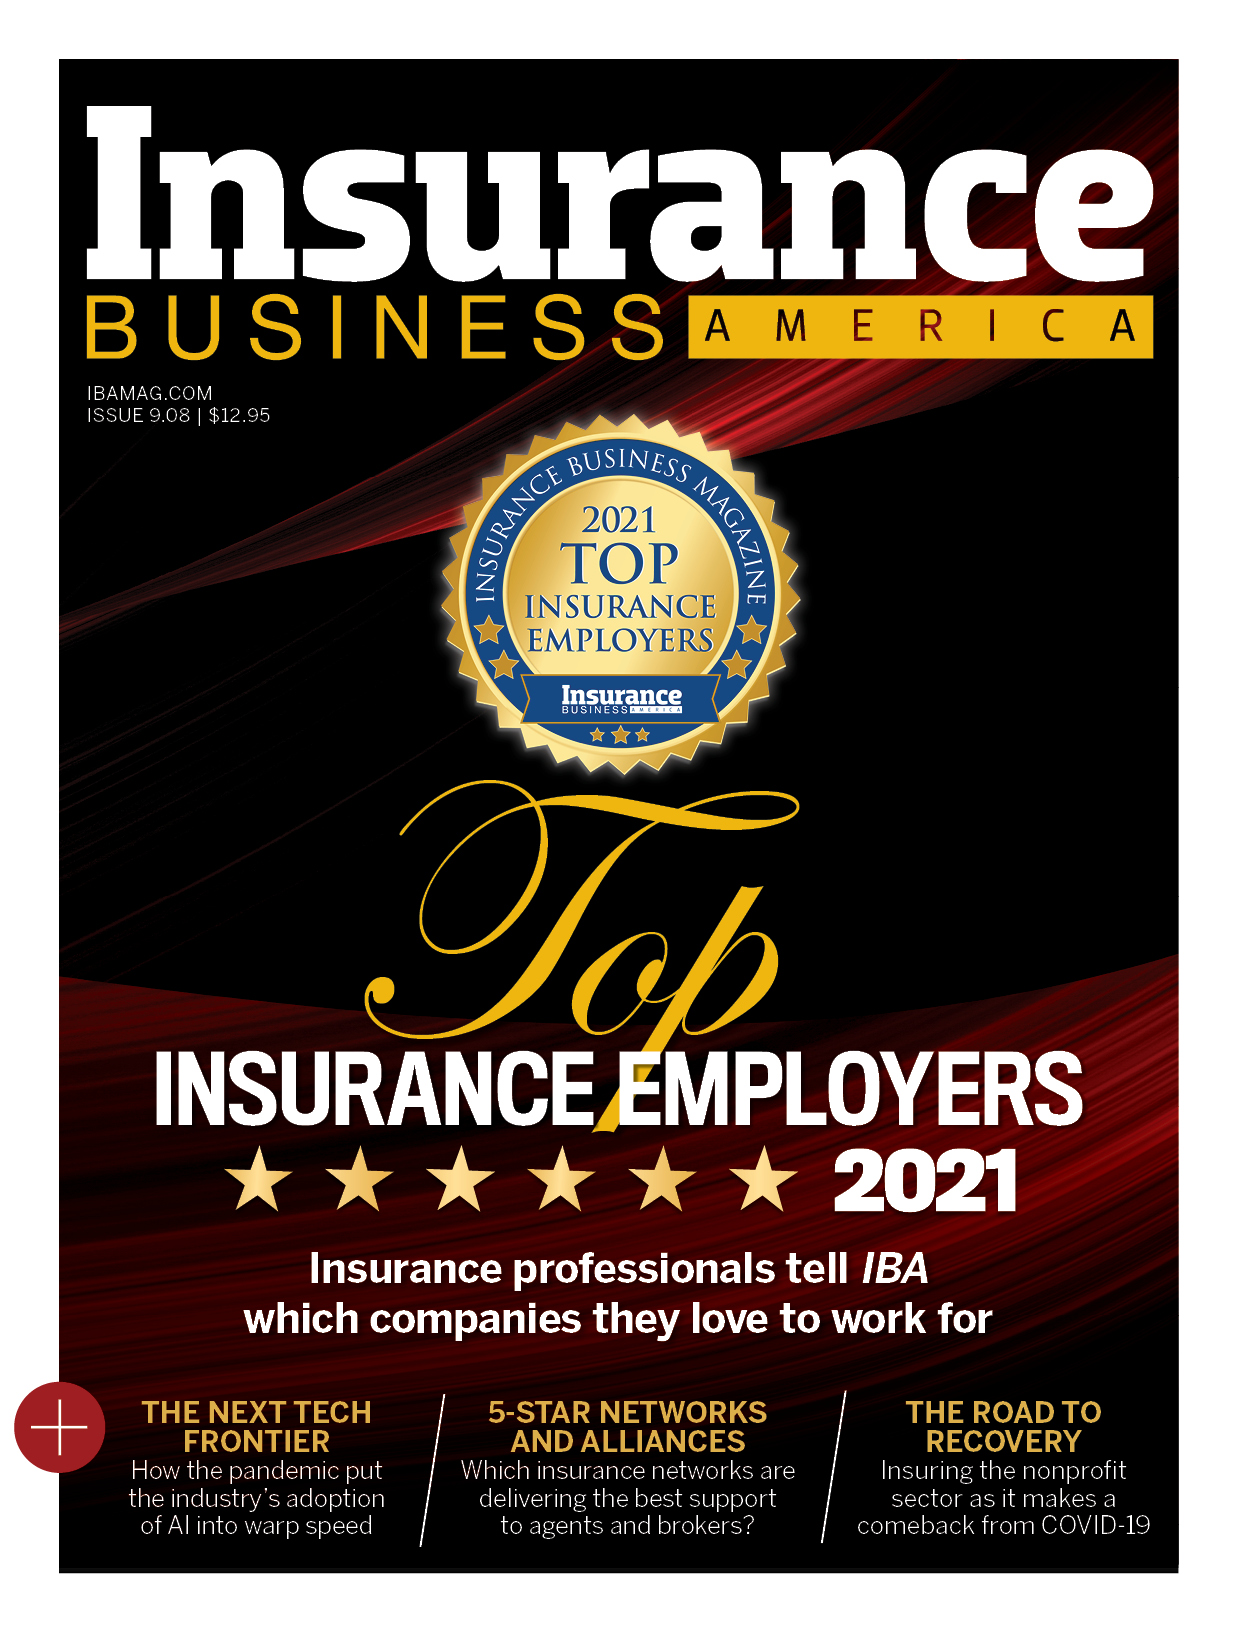 Insurance Business America issue 9.08